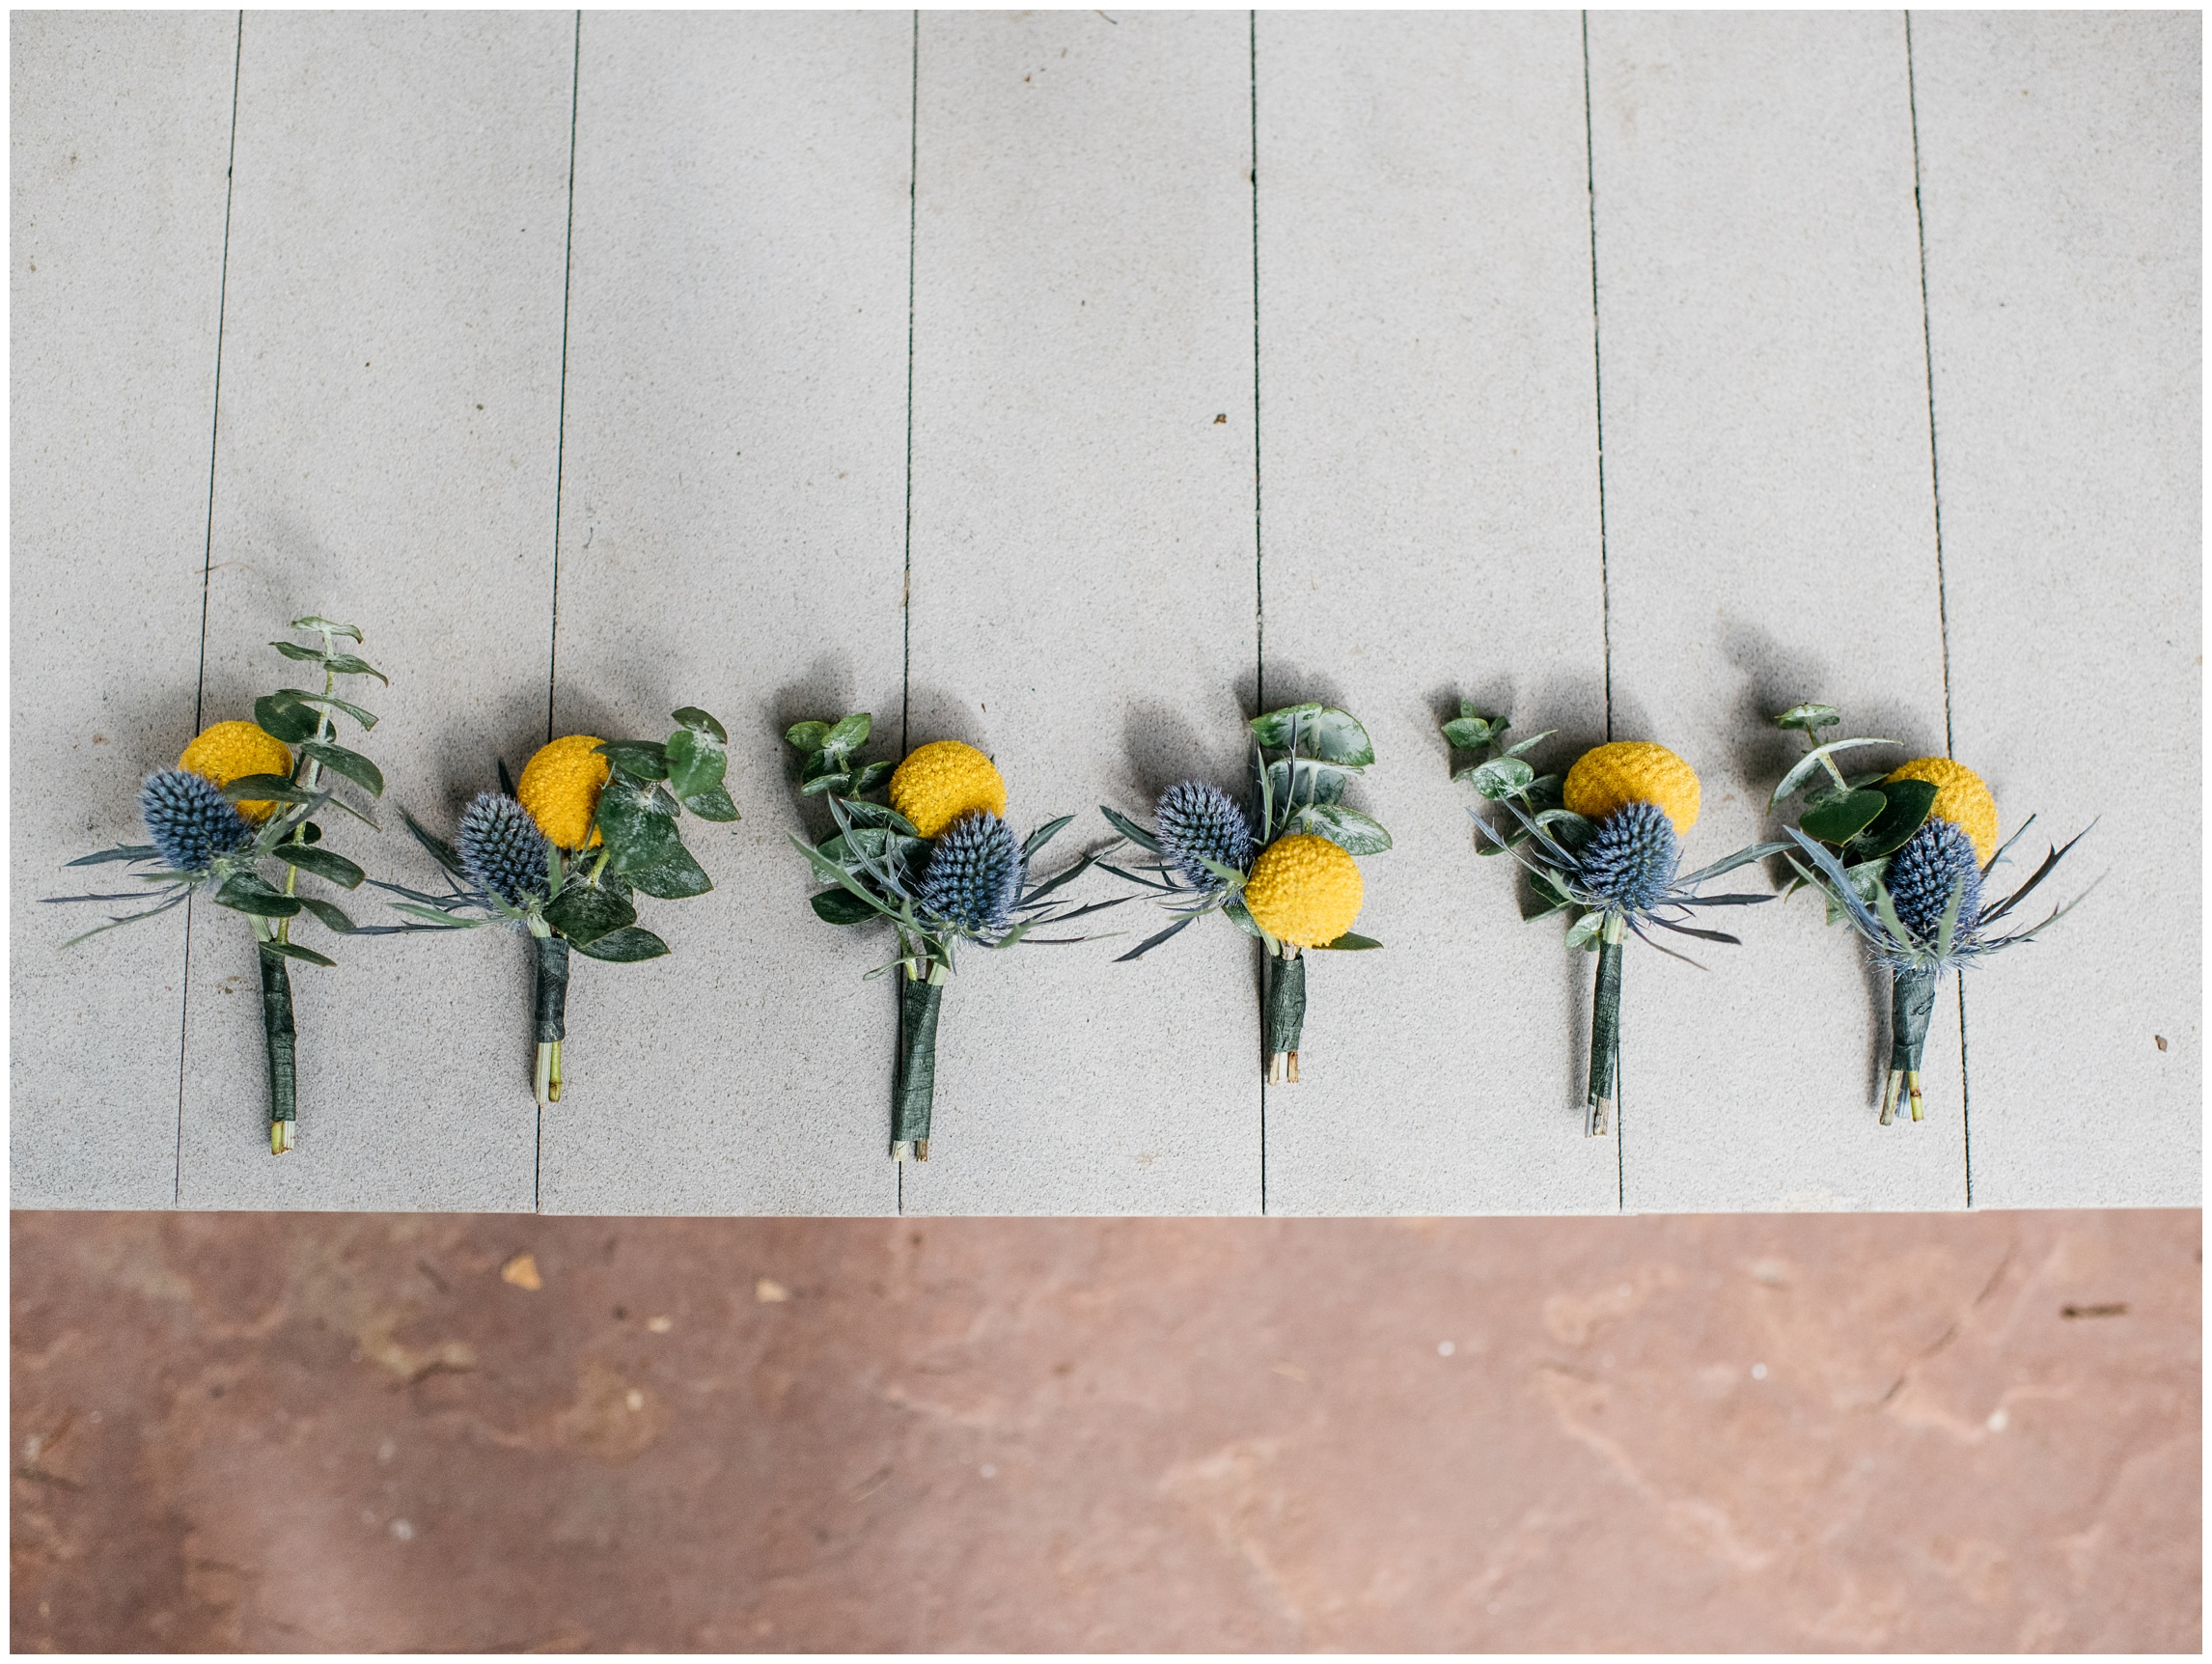 Colorful boutonnieres about to be pinned on the groomsmen. Wedding photography by Sonja Salzburg of Sonja K Photography.